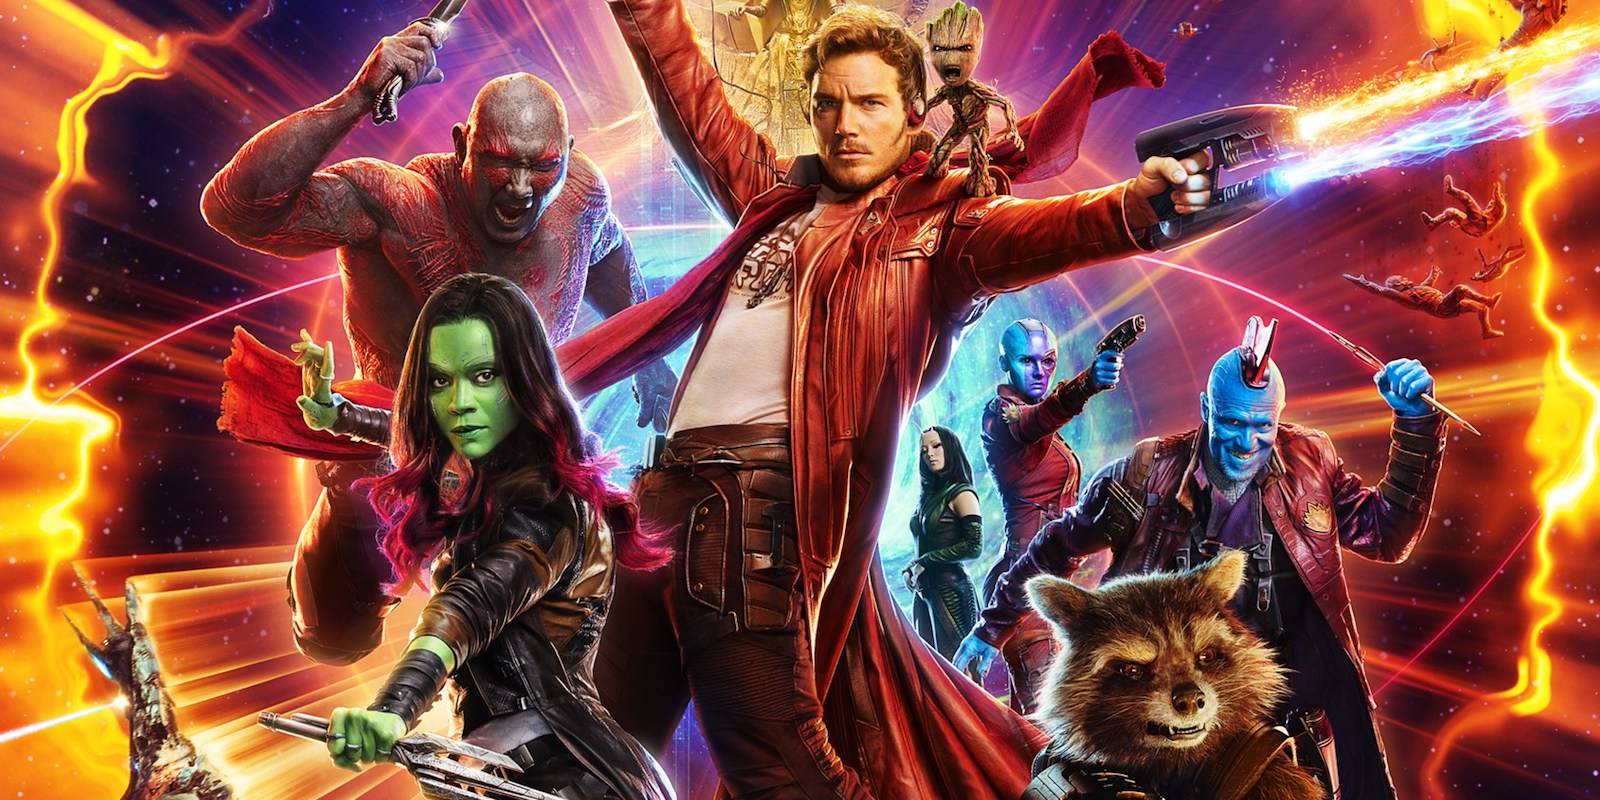 'Guardians' sequel blasts off to $17M on opening night